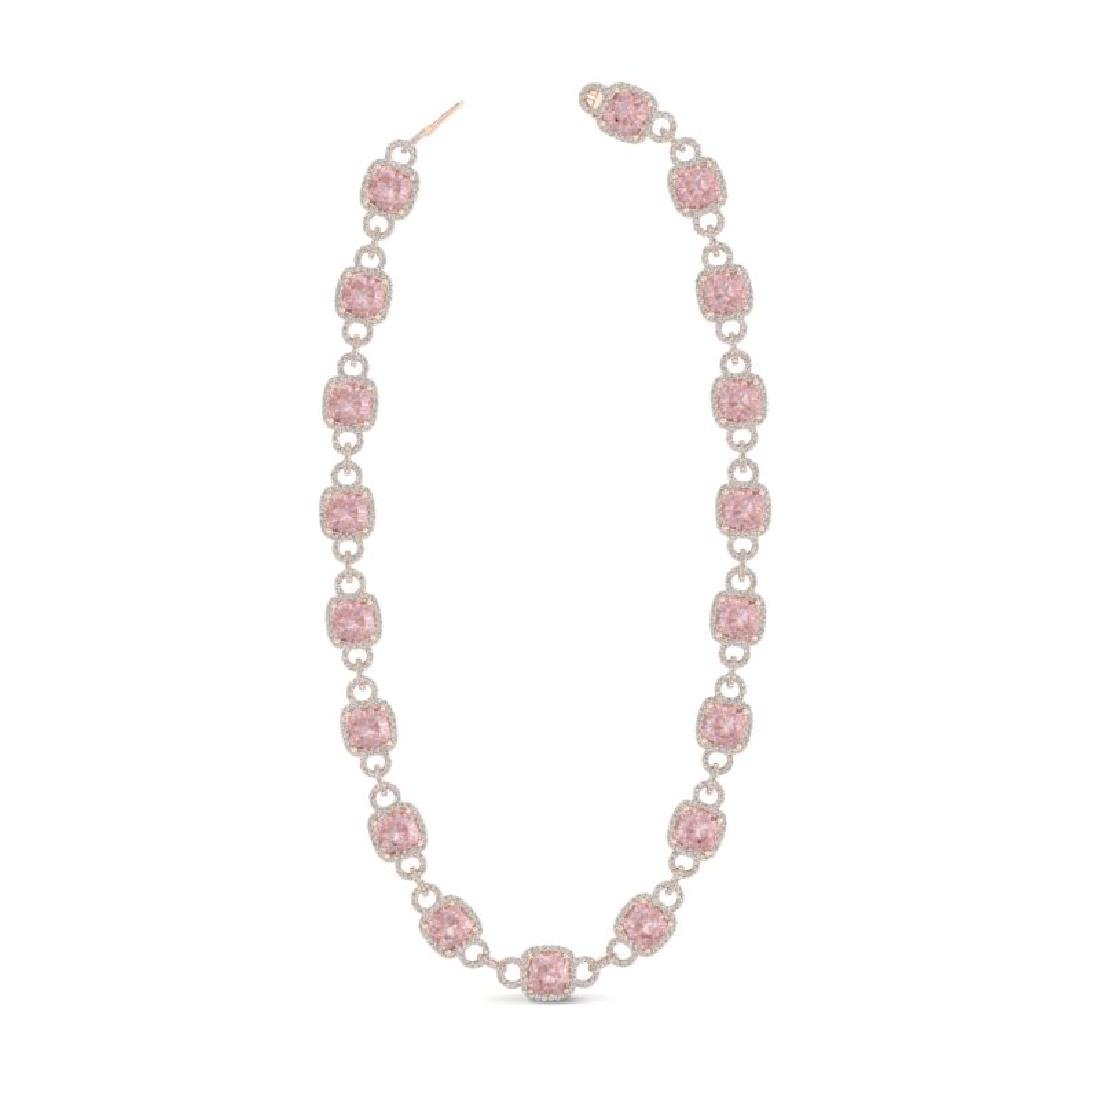 49 CTW Morganite & VS/SI Diamond Necklace 14K Rose Gold - 2